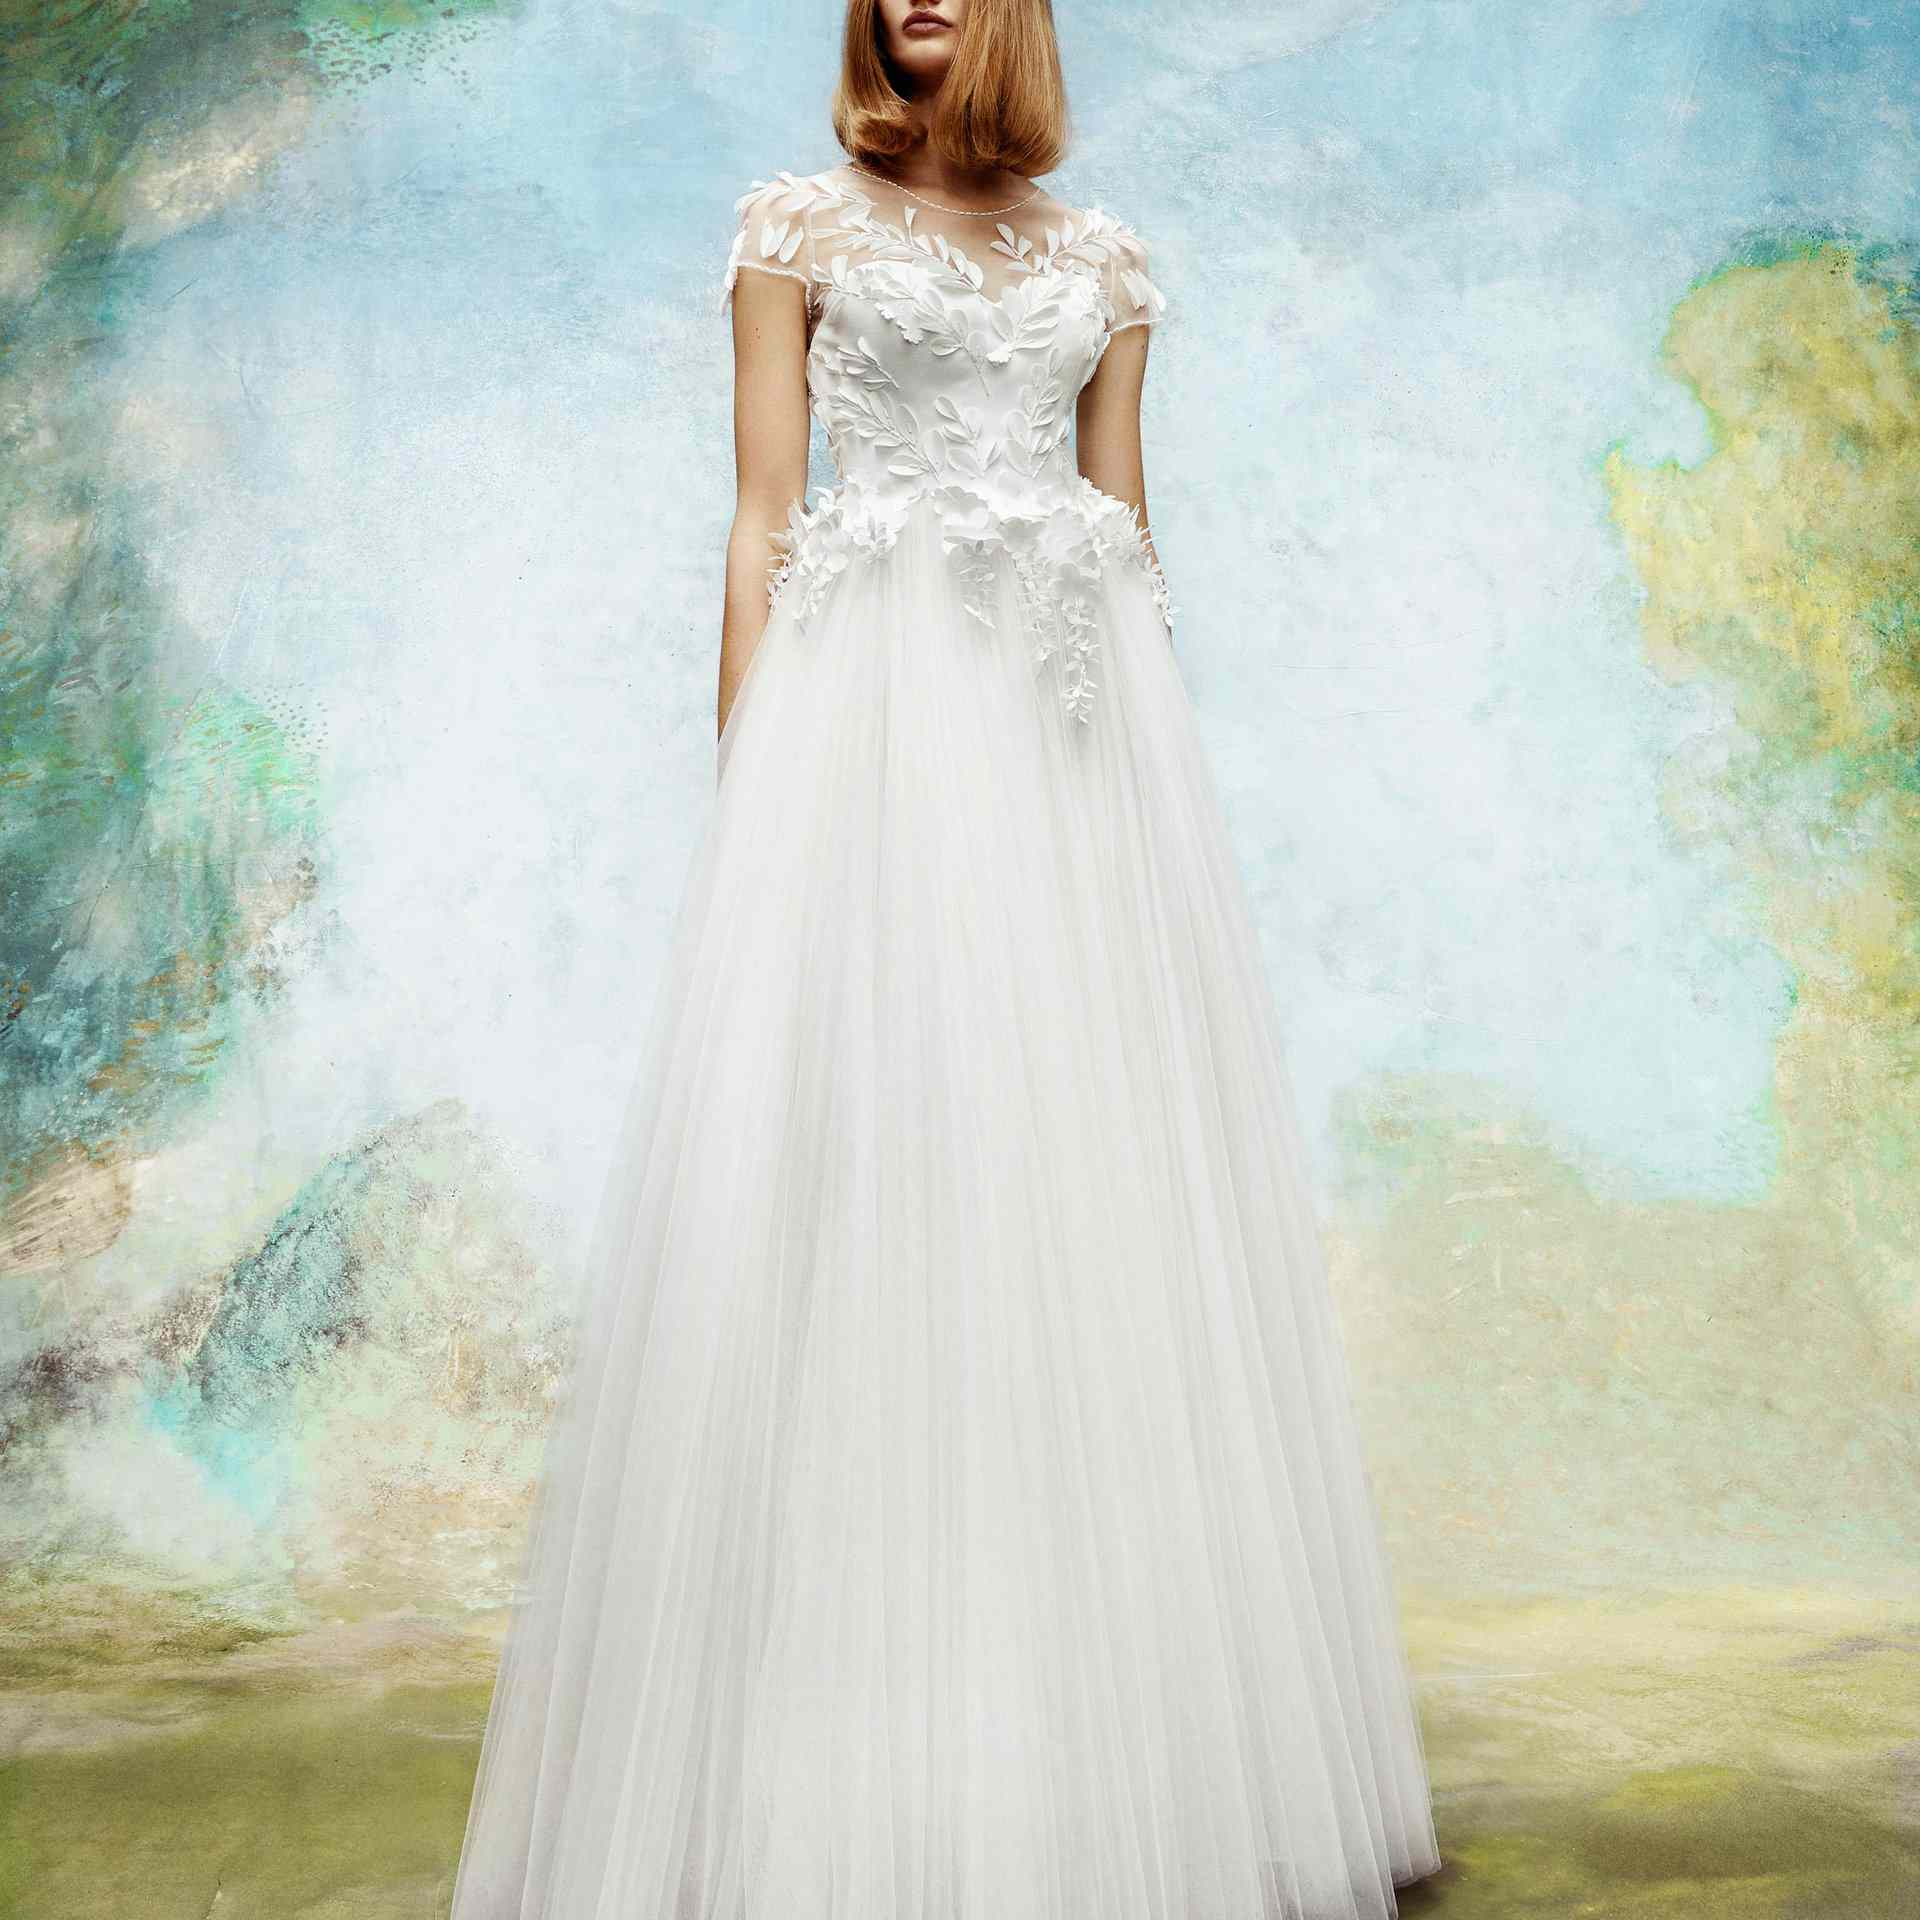 Model in wedding gown with tulle skirt and floral embellishments